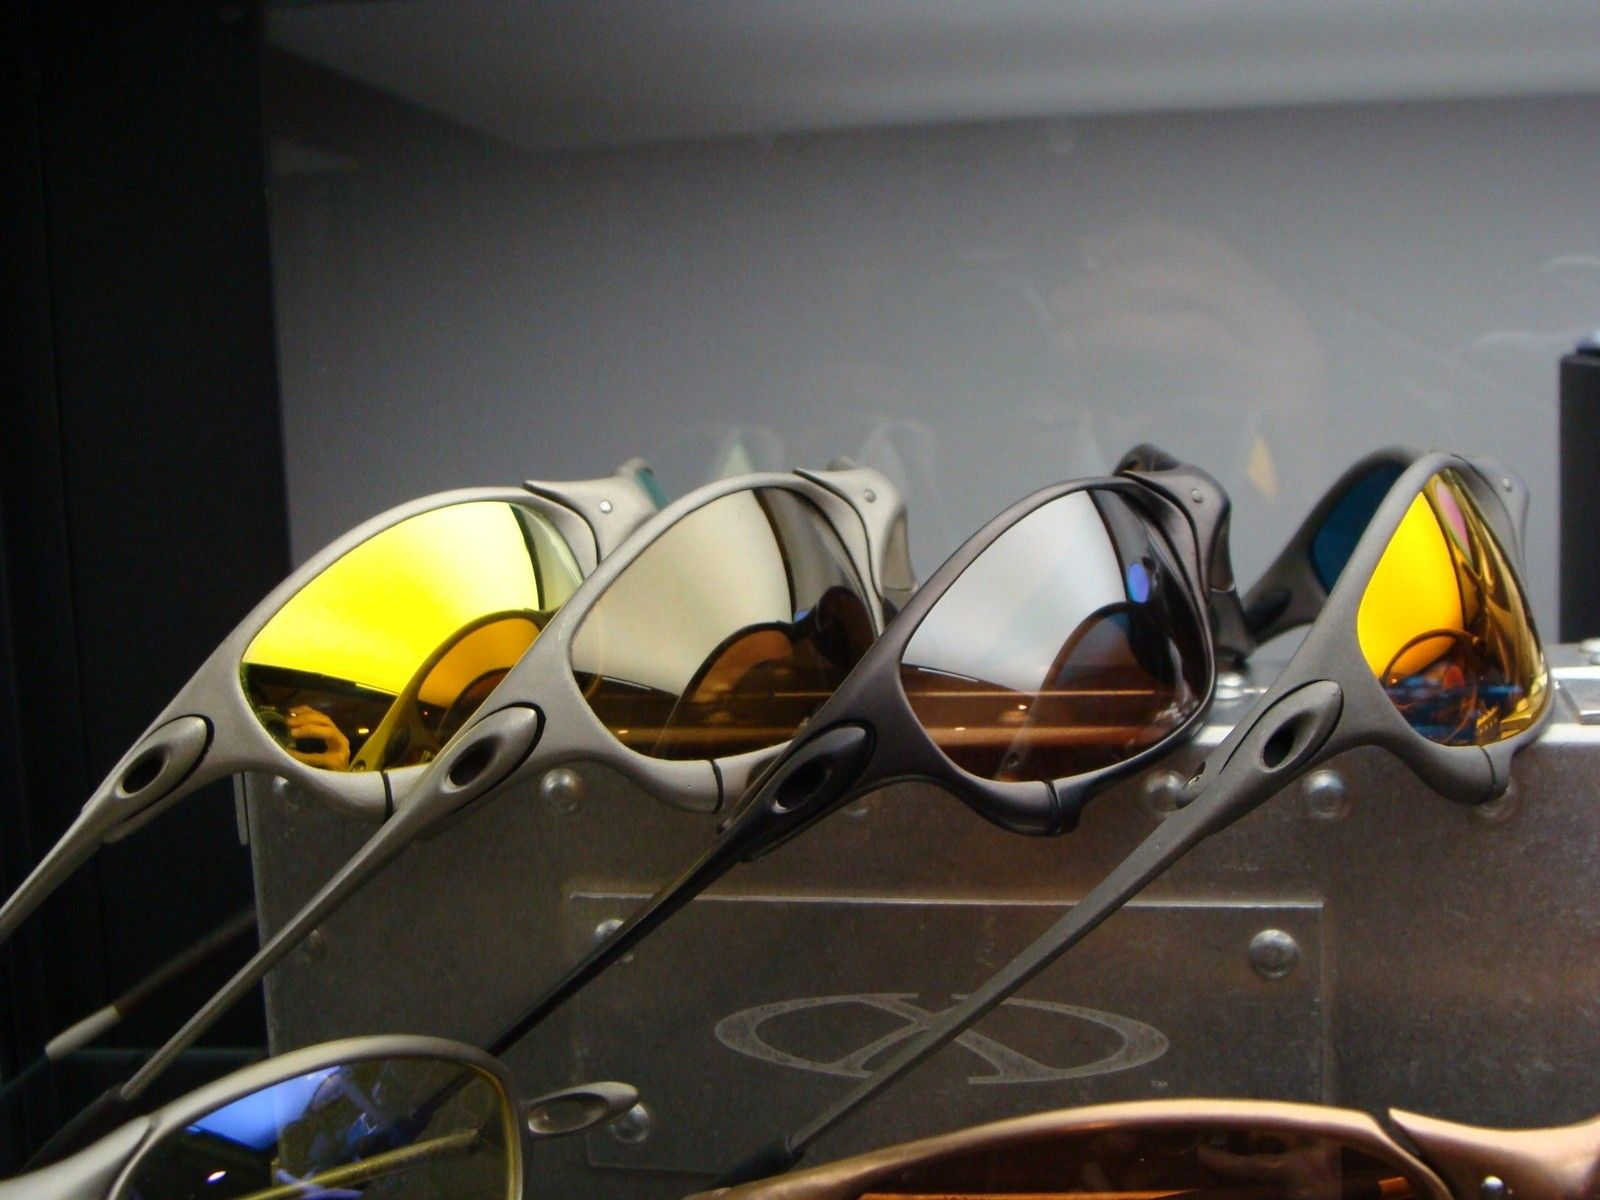 Preview Of My Oakley Collection - DSC07616.JPG